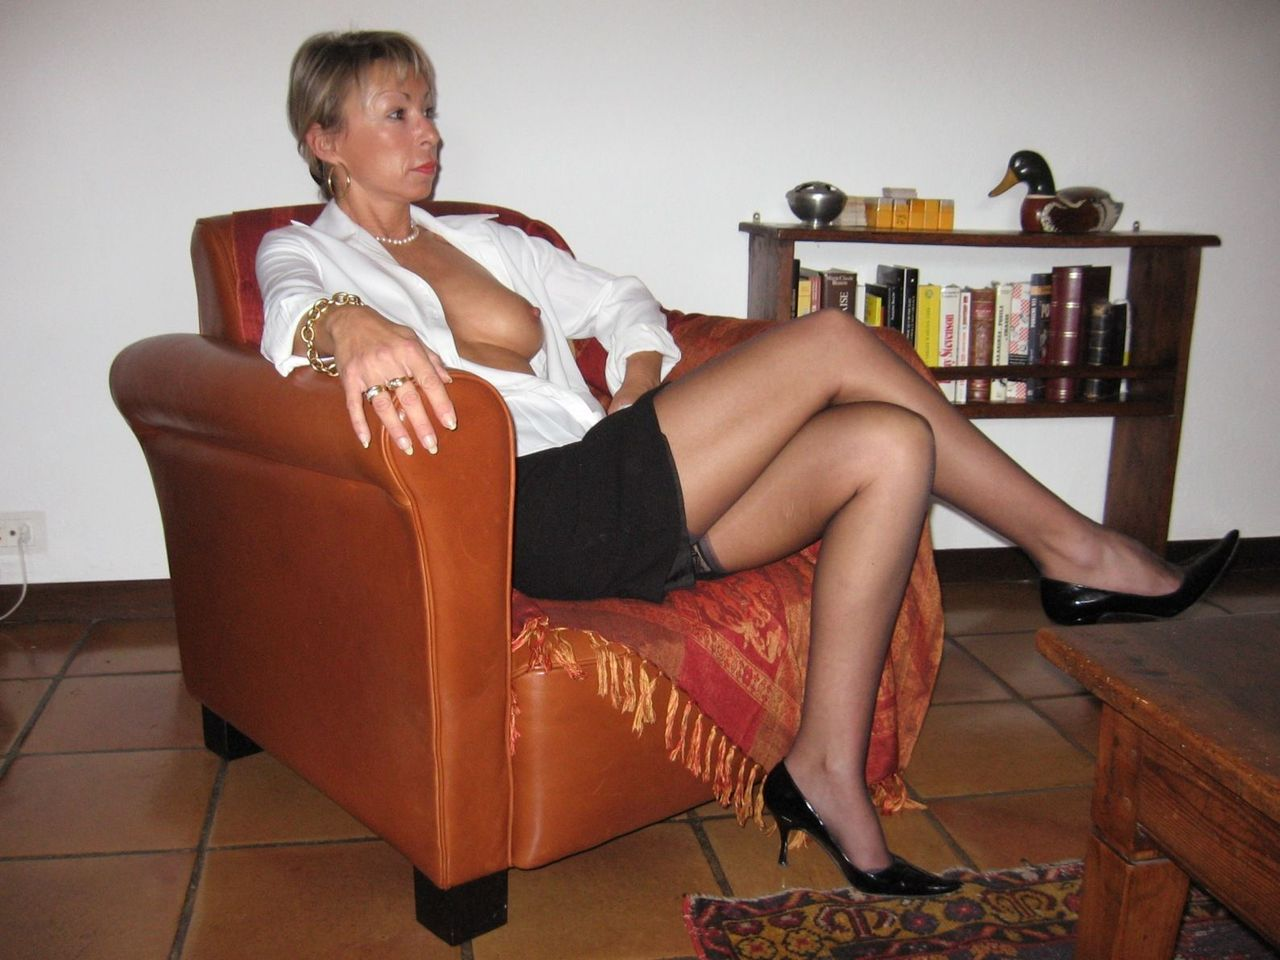 German hottest milf in real sexdate with big cock stranger 10